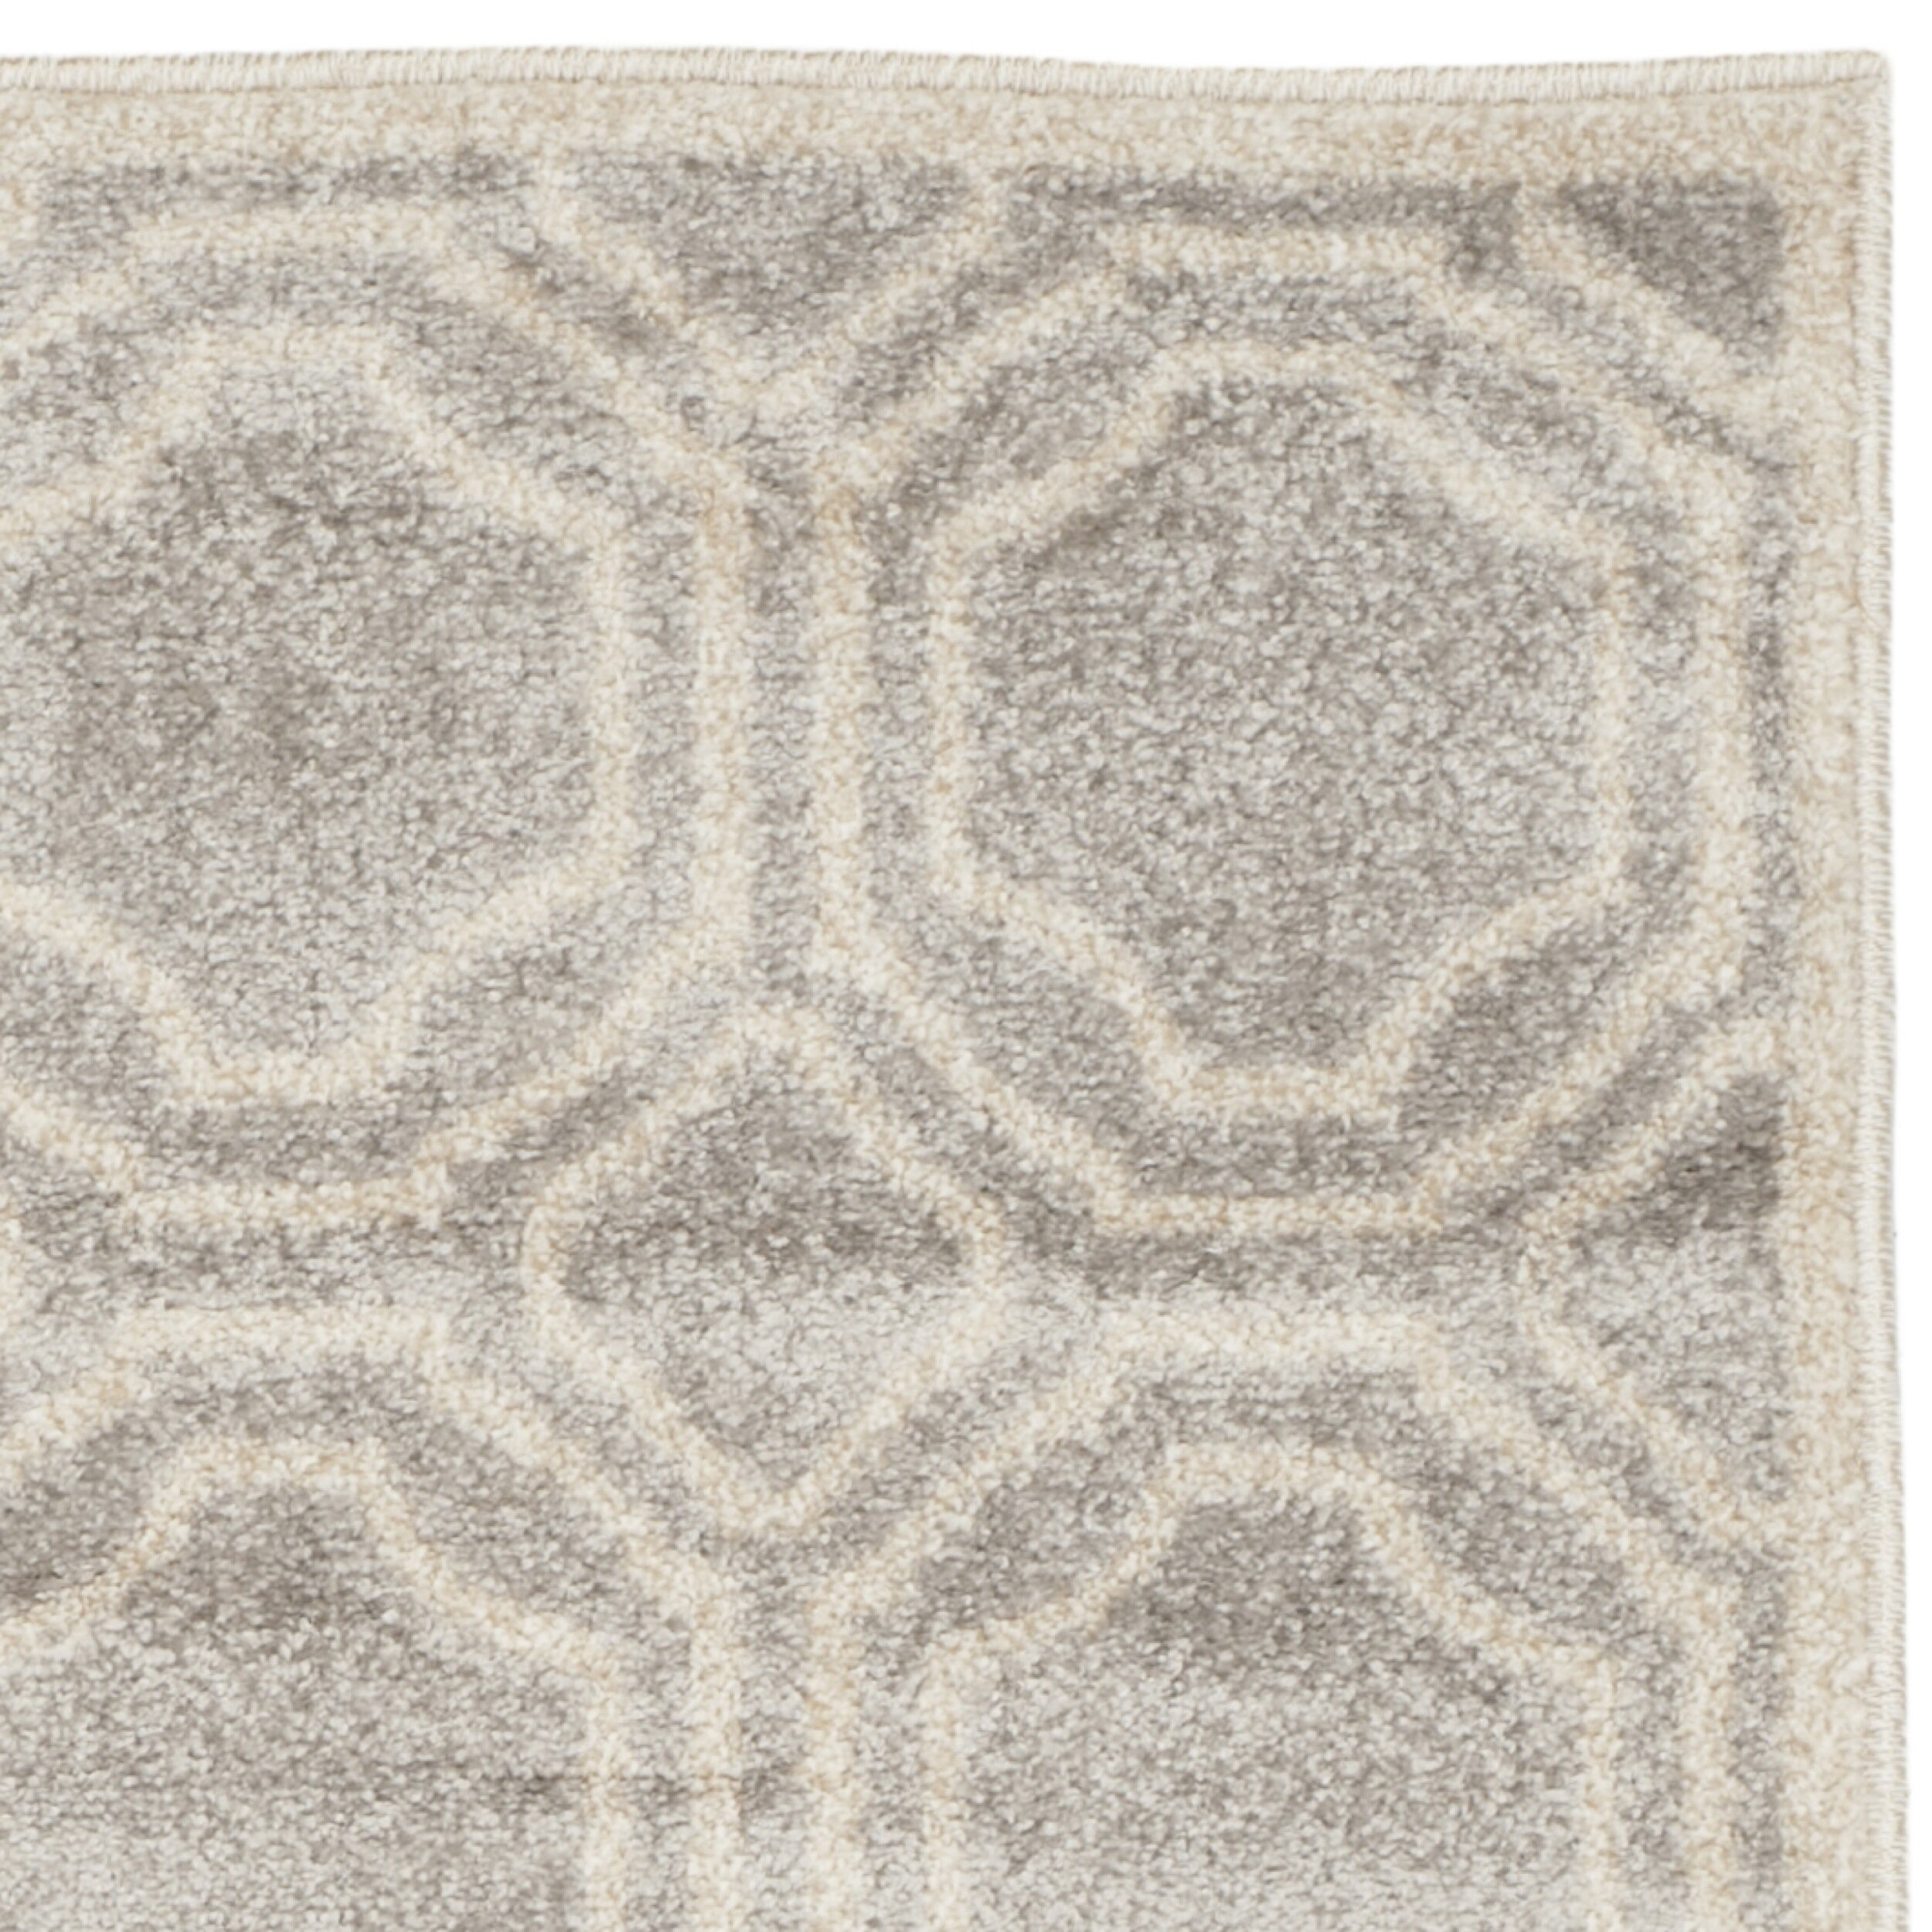 rugs area rugs runner area rugs dwellstudio sku dwl11569